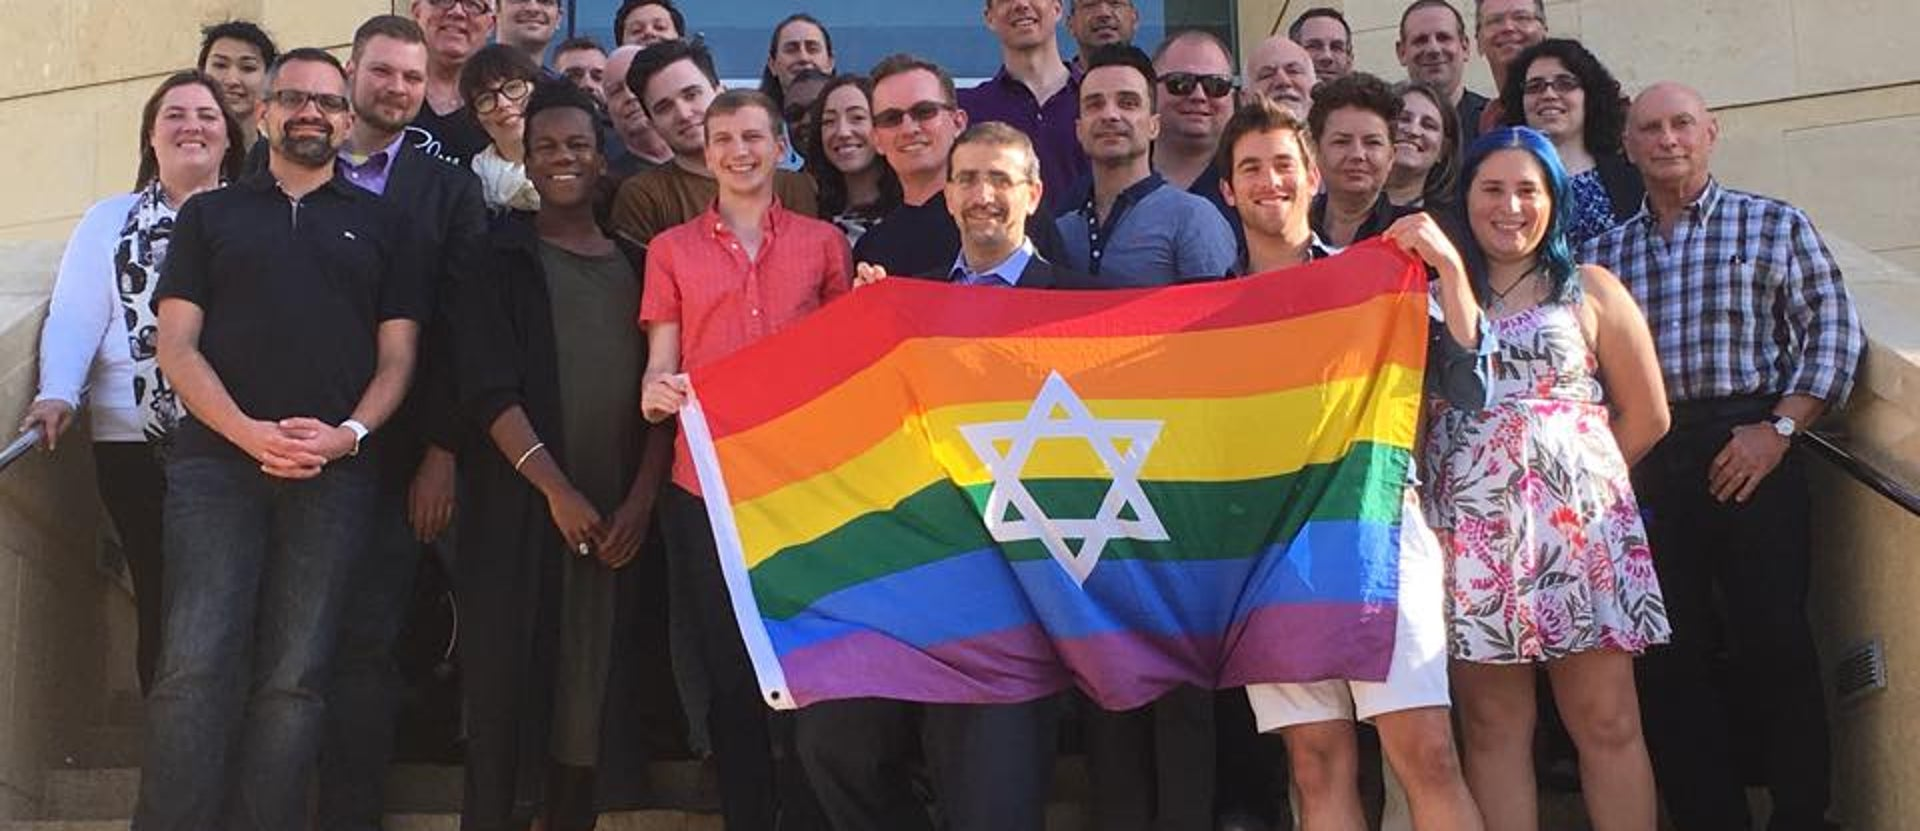 U.S. Ambassador Dan Shapiro meets with A Wider Bridge, an American LGBT rights group that visited Israel in November 2016.